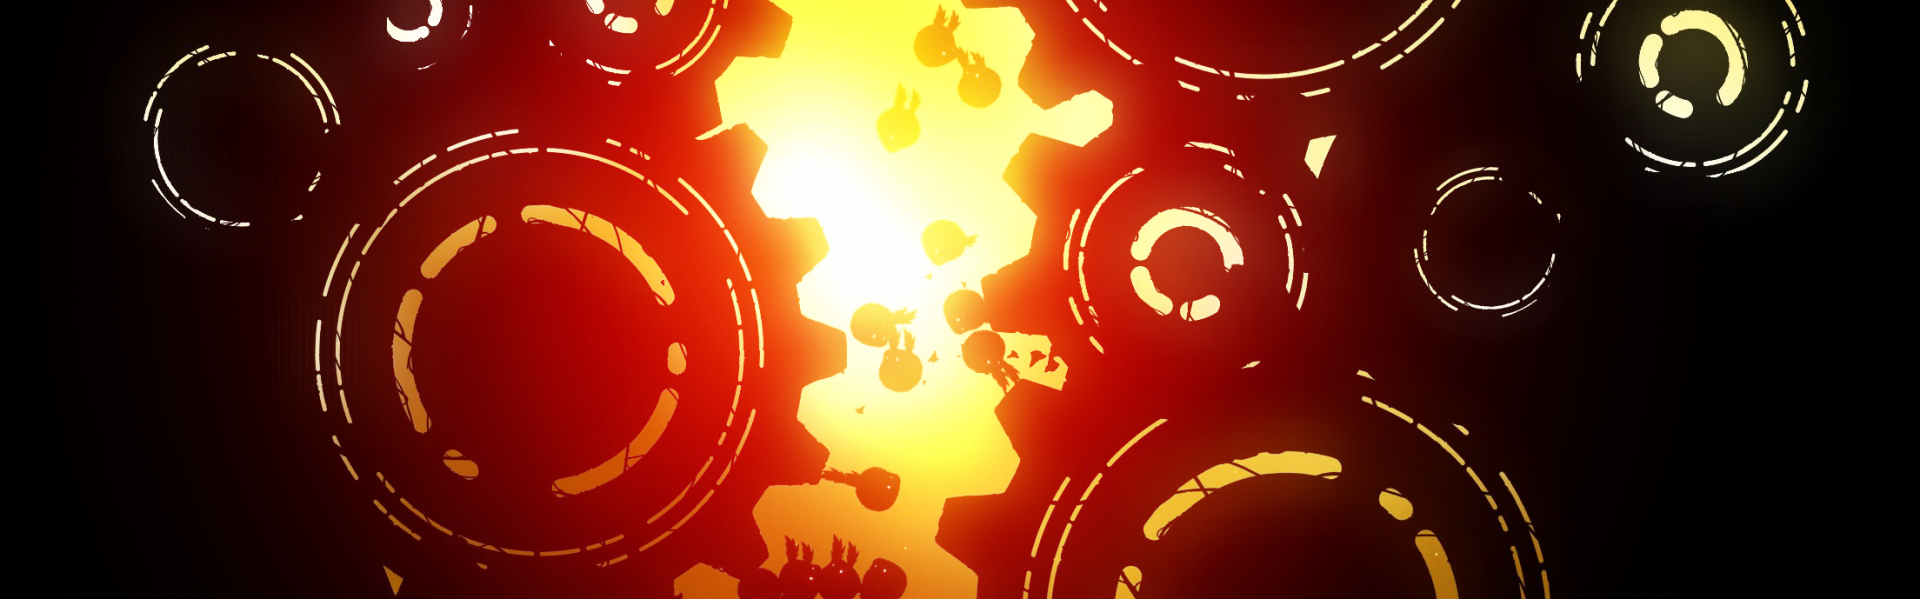 cropped-BADLAND2_2208x1242_2.png